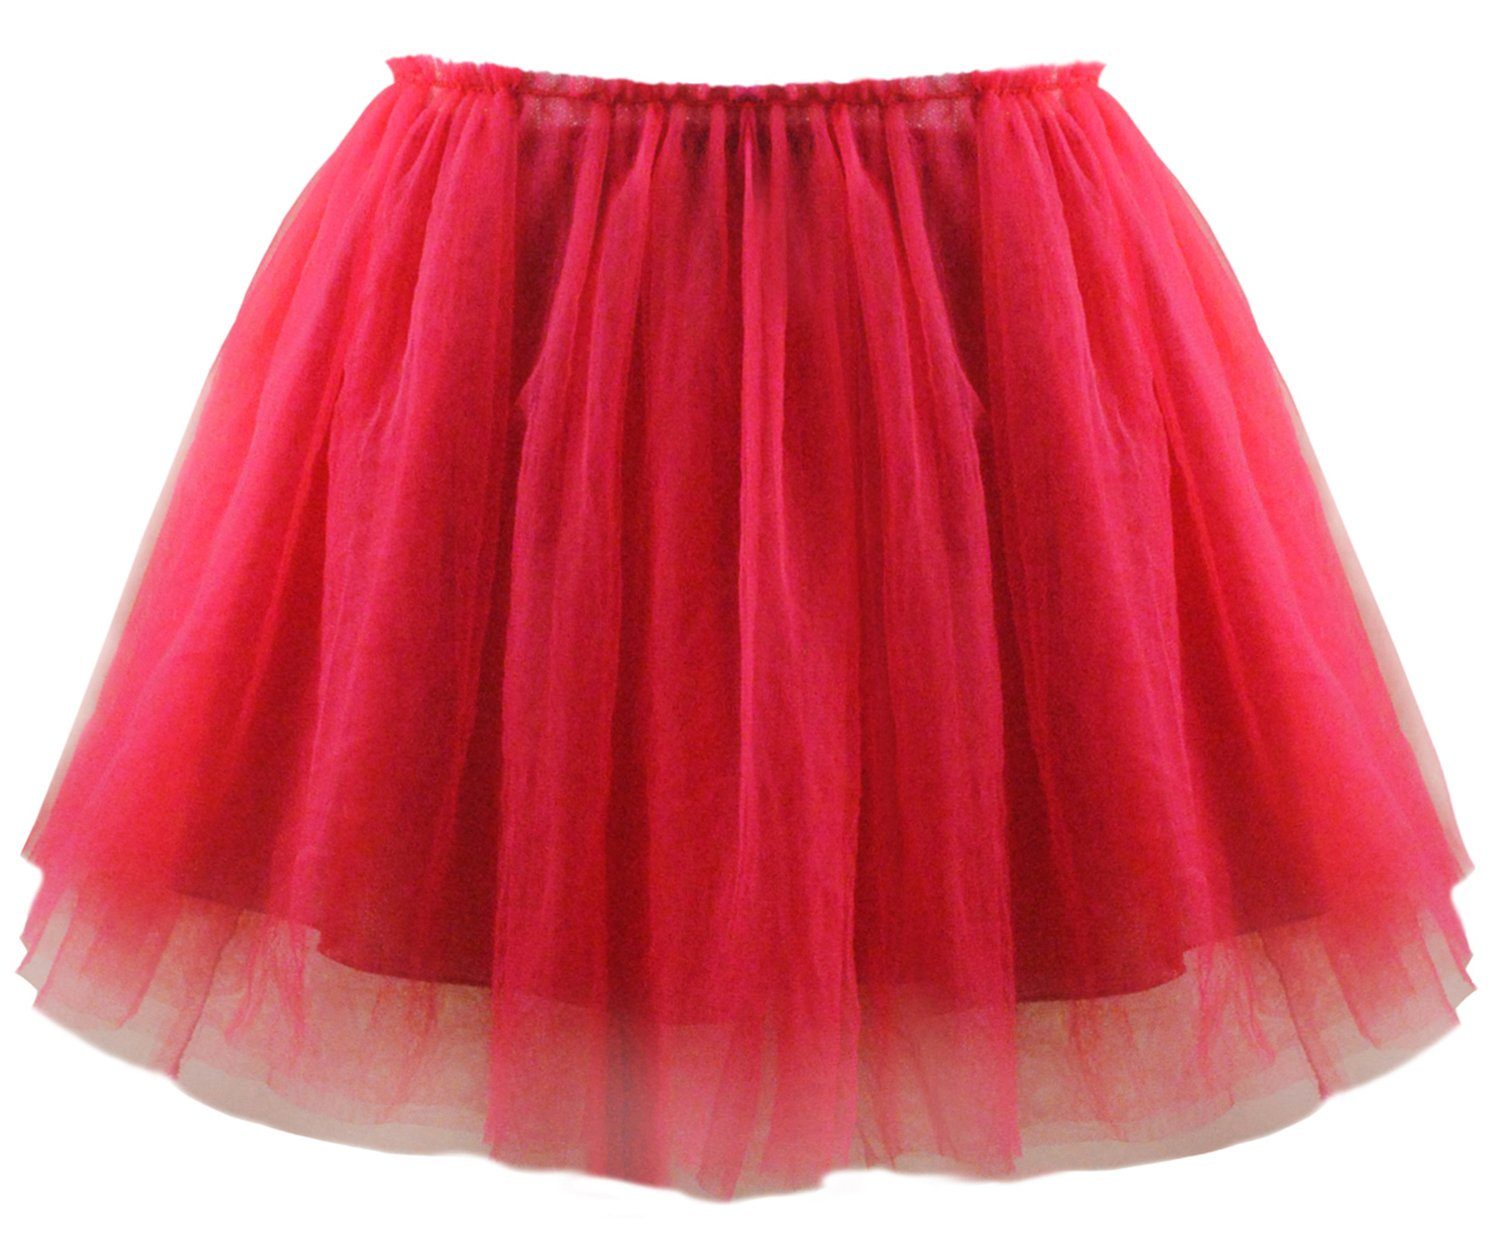 Abbyabbie.Li Girl Tutu Skirt Four Layer Lace Cover Cotton Lining for Party Ceremony Casual Party